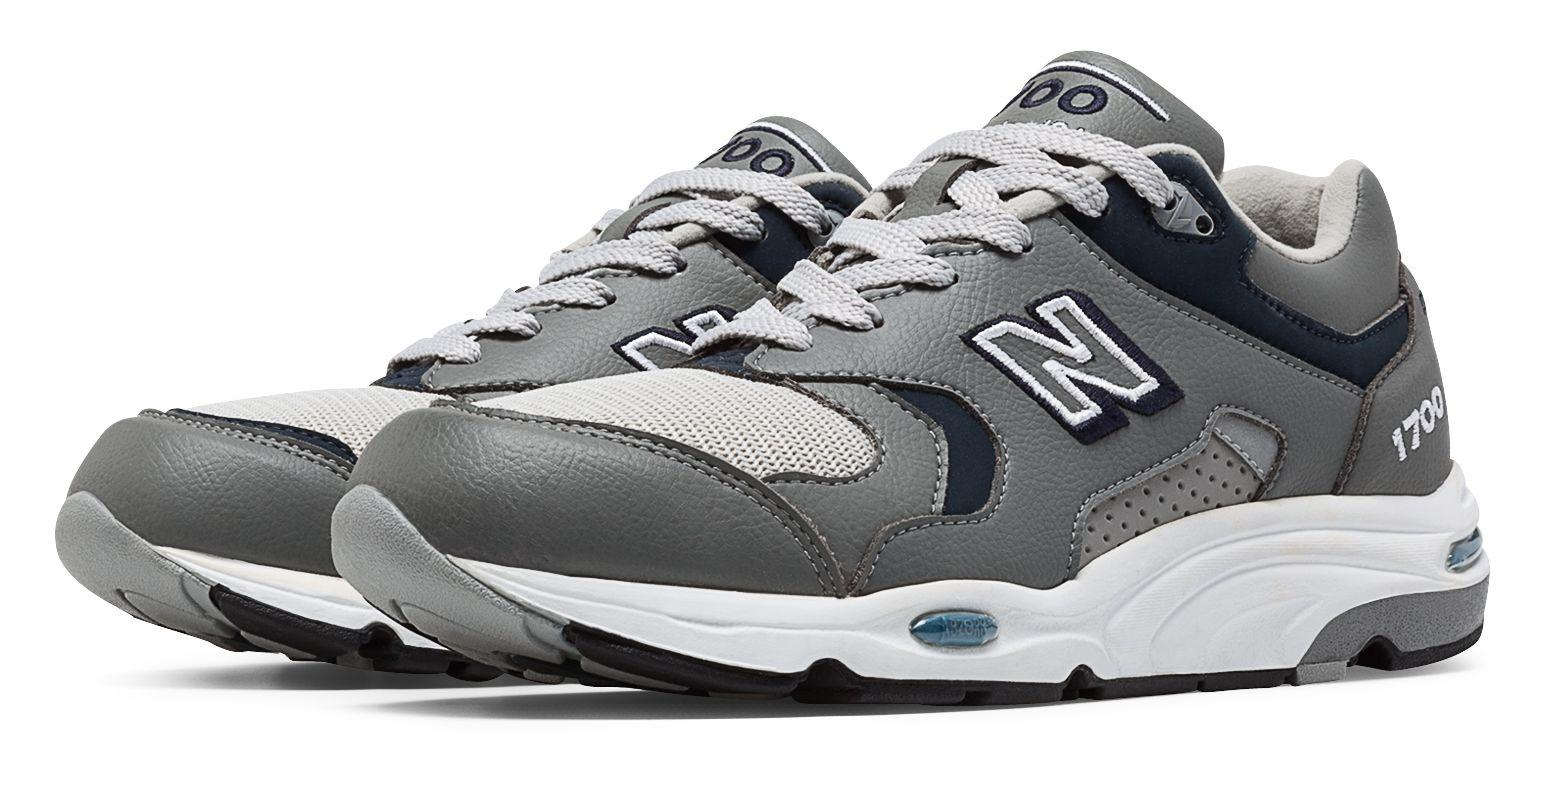 New Balance 1700 Heritage Made In Usa Shoes in Grey/Navy (Gray ...